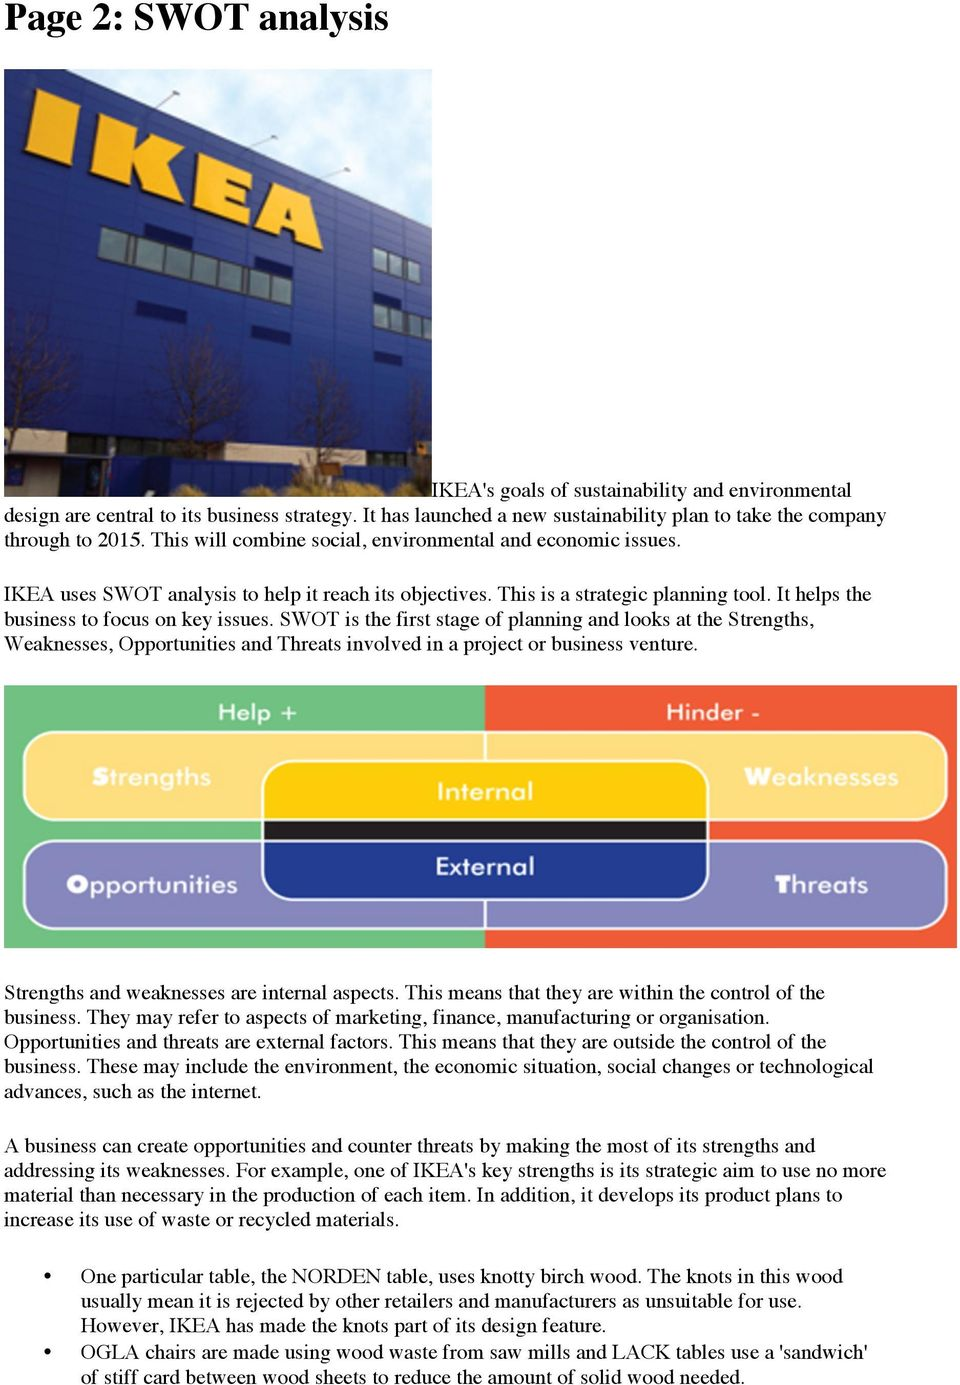 Ikea Case Study Swot Analysis And Sustainable Business Planning Pdf Free Download